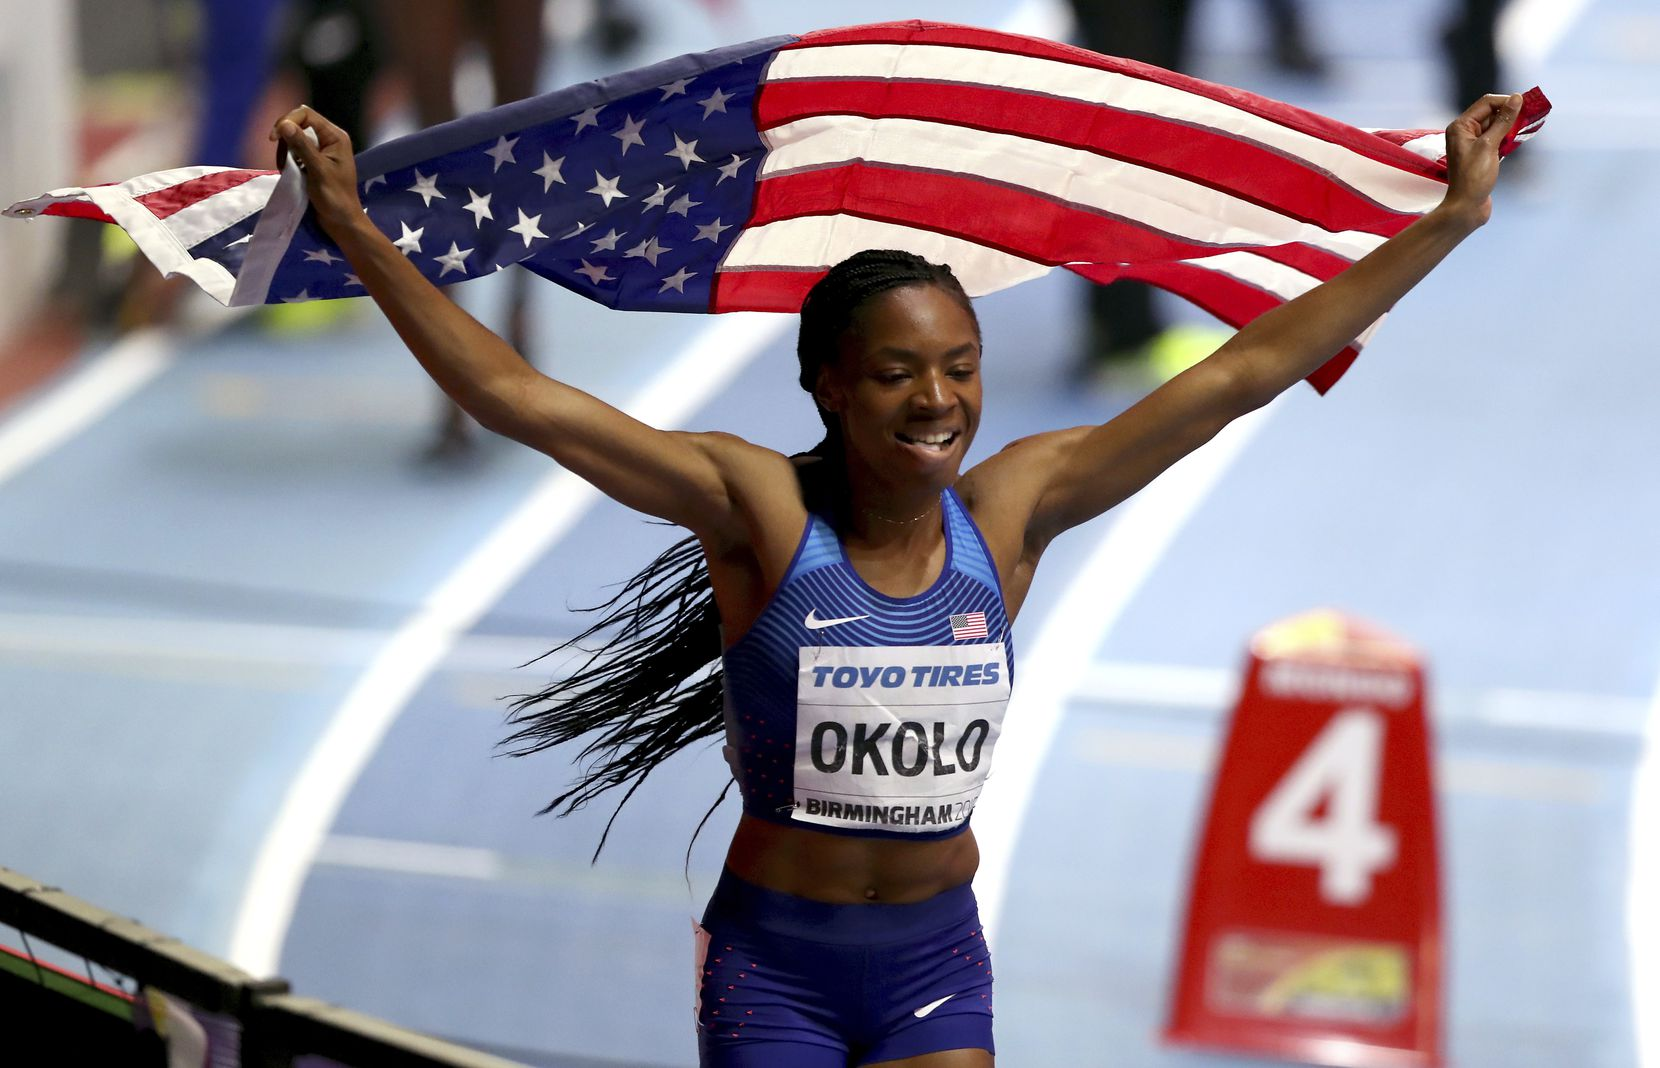 FILE - United States' Courtney Okolo celebrates winning the women's 400-meter final at the World Athletics Indoor Championships in Birmingham, Britain, Saturday, March 3, 2018. (AP Photo/Alastair Grant)